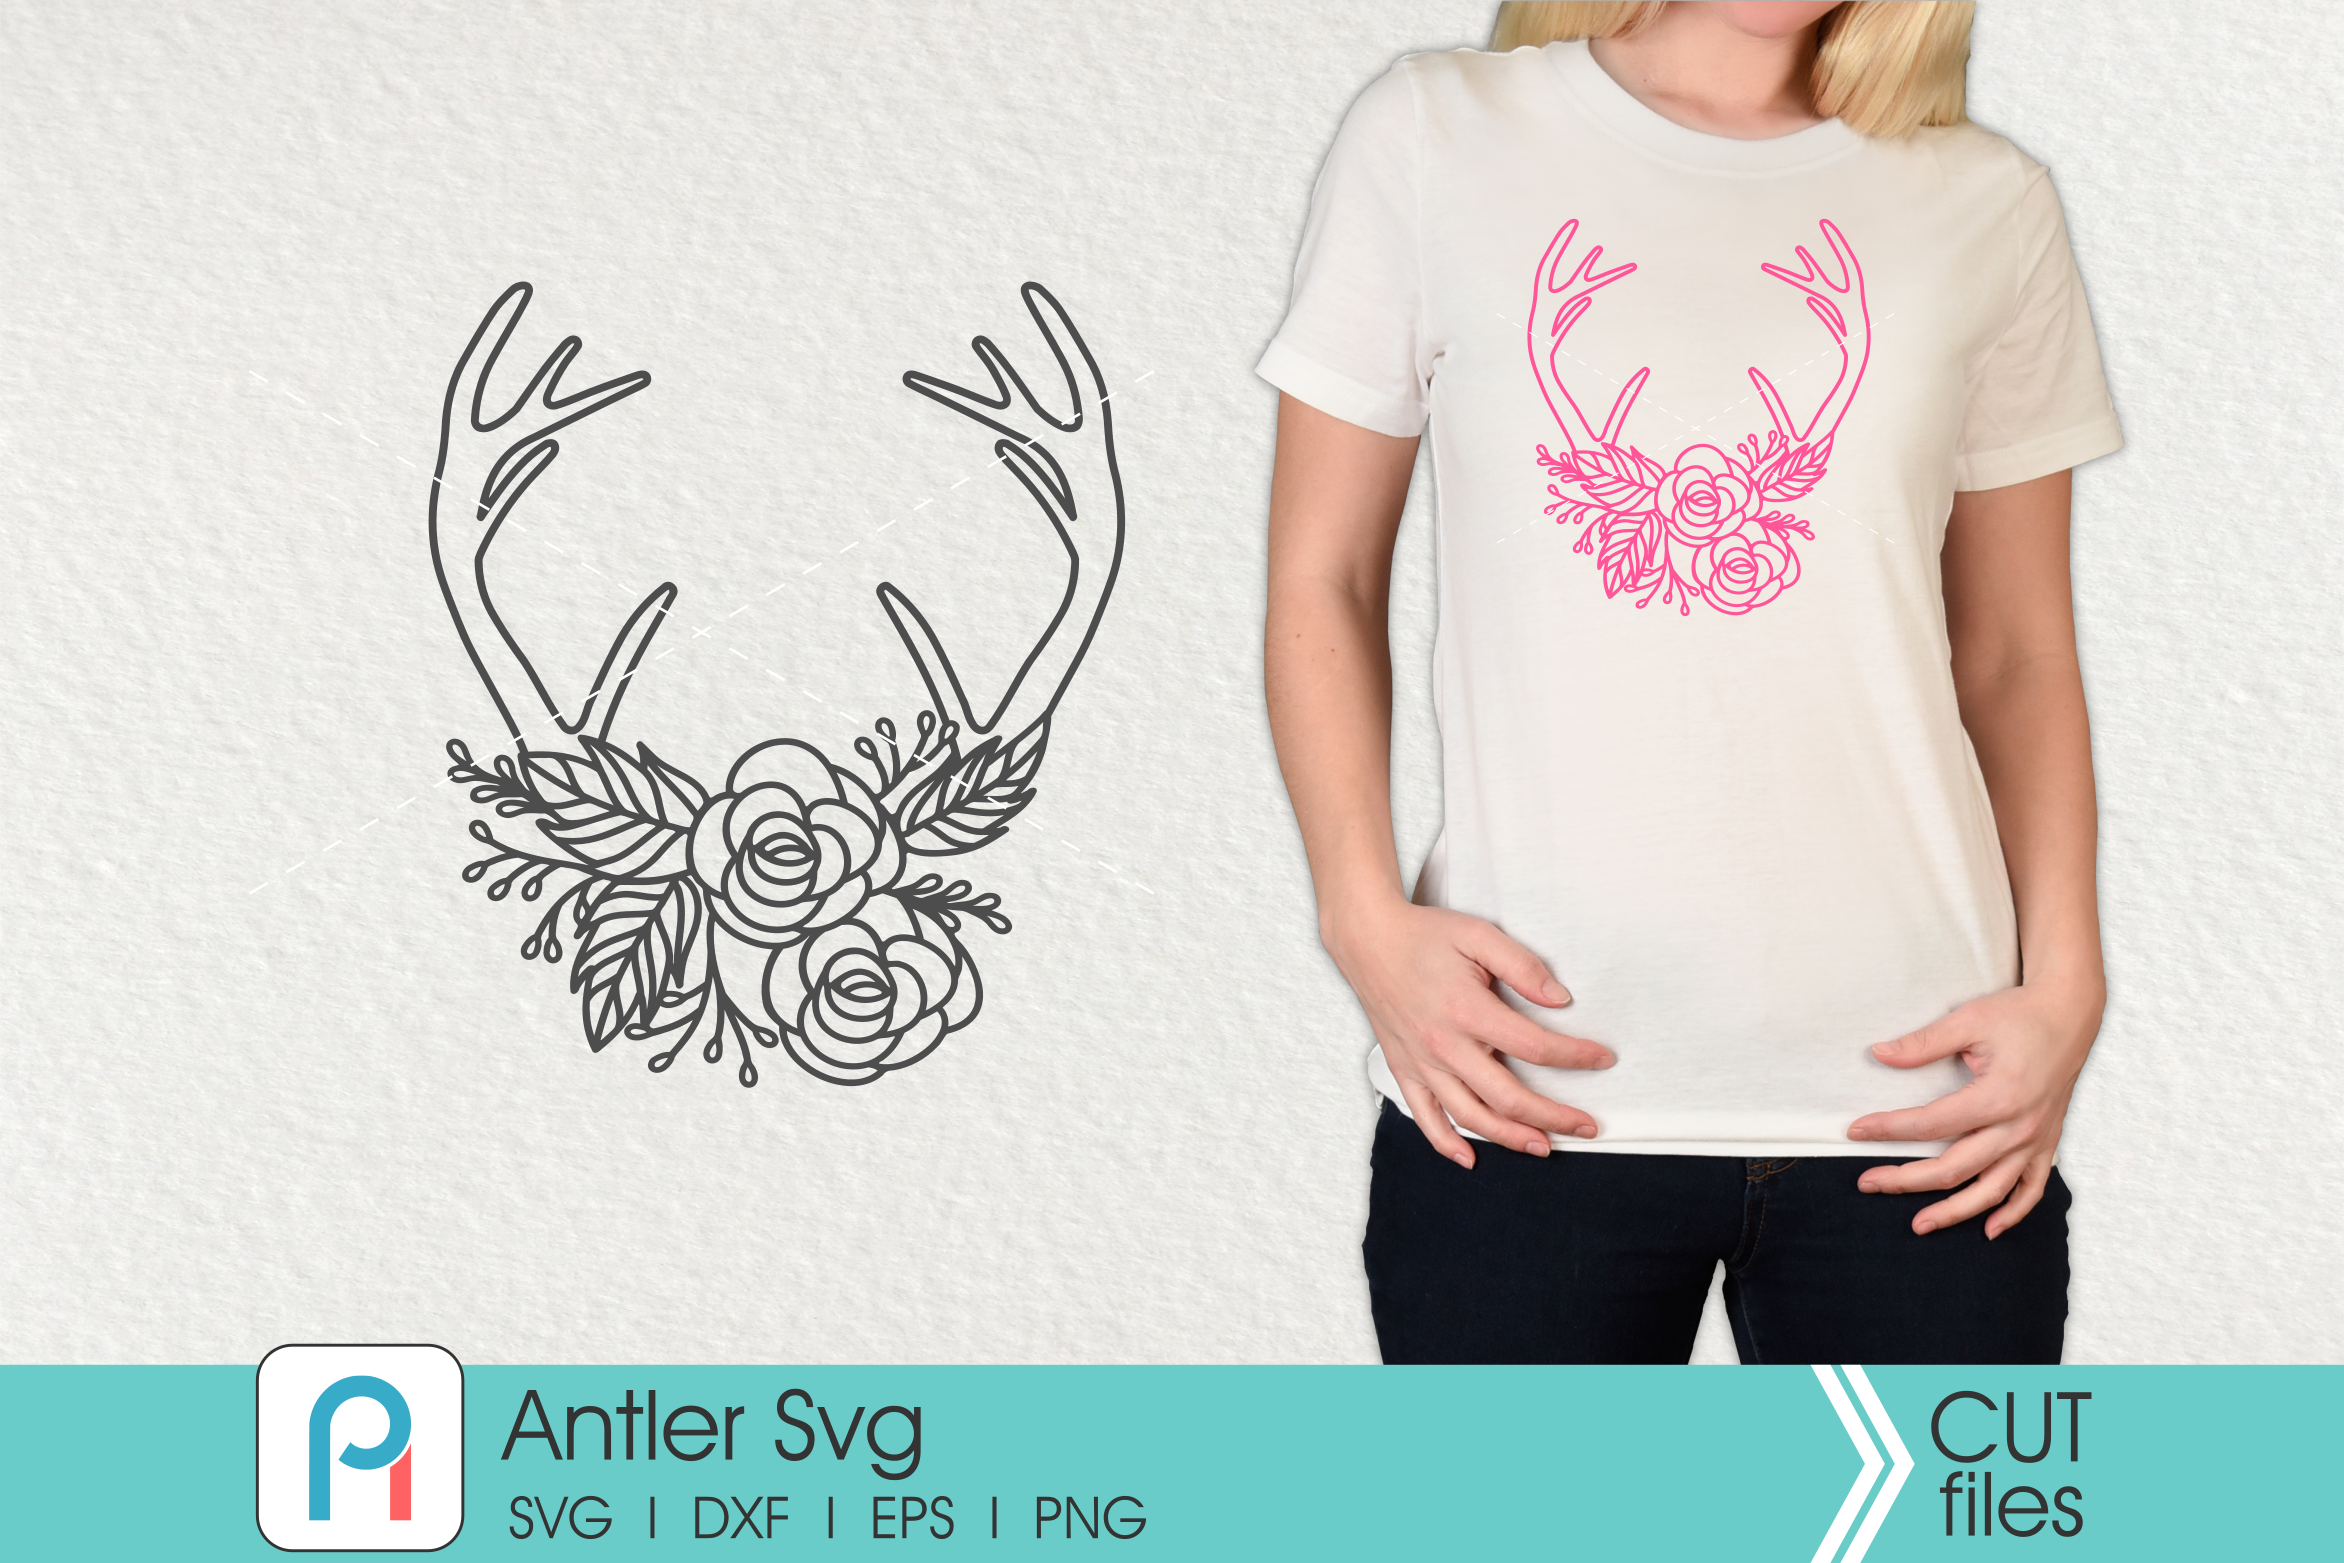 Antler Svg Antler Clip Art Deer Antler Svg Flower Svg By